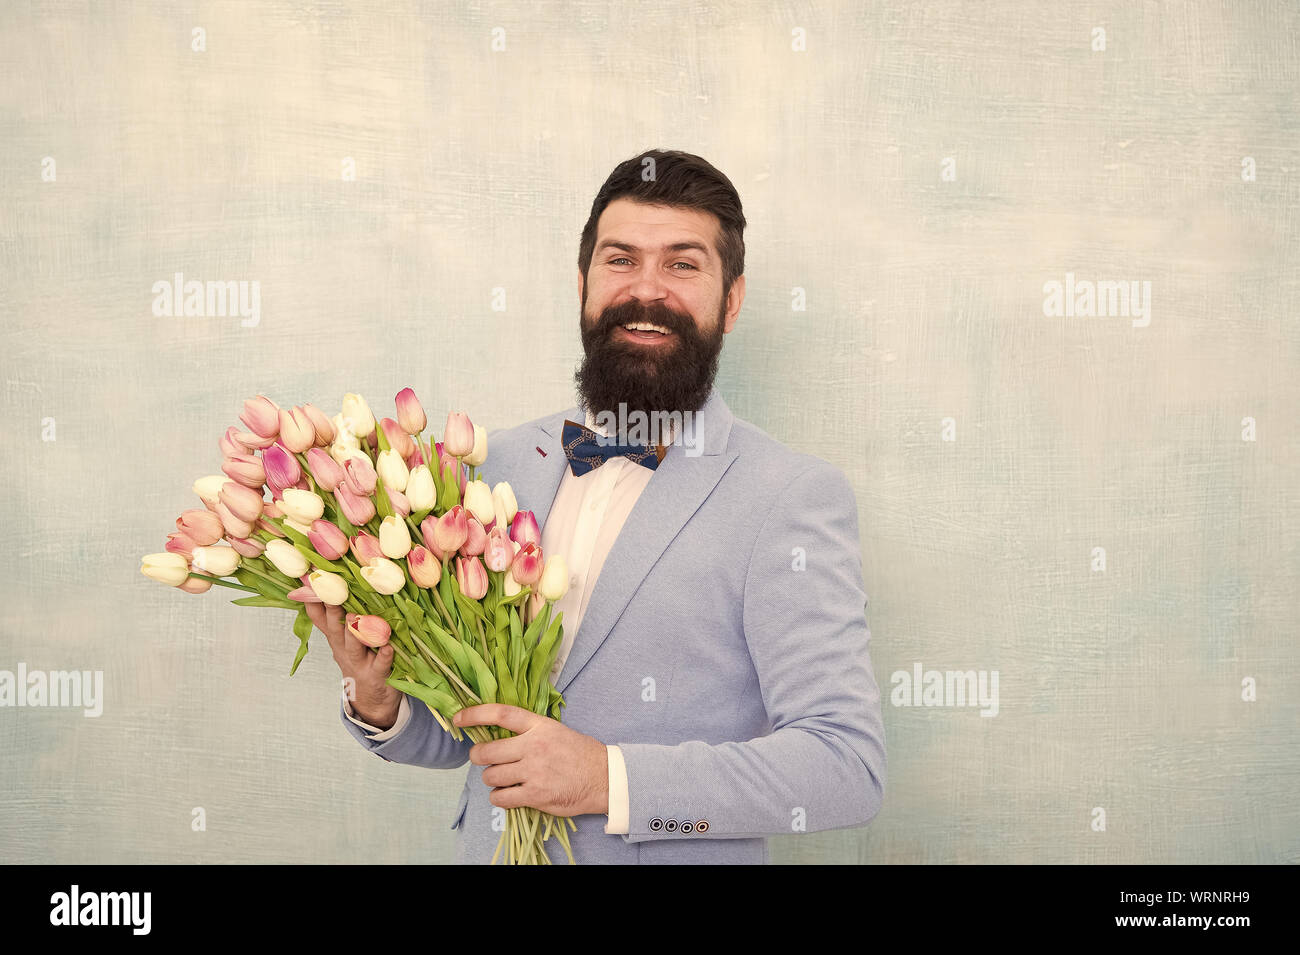 Birthday Greetings Best Flowers For Girlfriend Flowers For Her Man Bearded Suit Bow Tie Hold Tulips Bouquet Gentleman Making Romantic Surprise For Her Flowers Delivery Gentleman Romantic Date Stock Photo Alamy